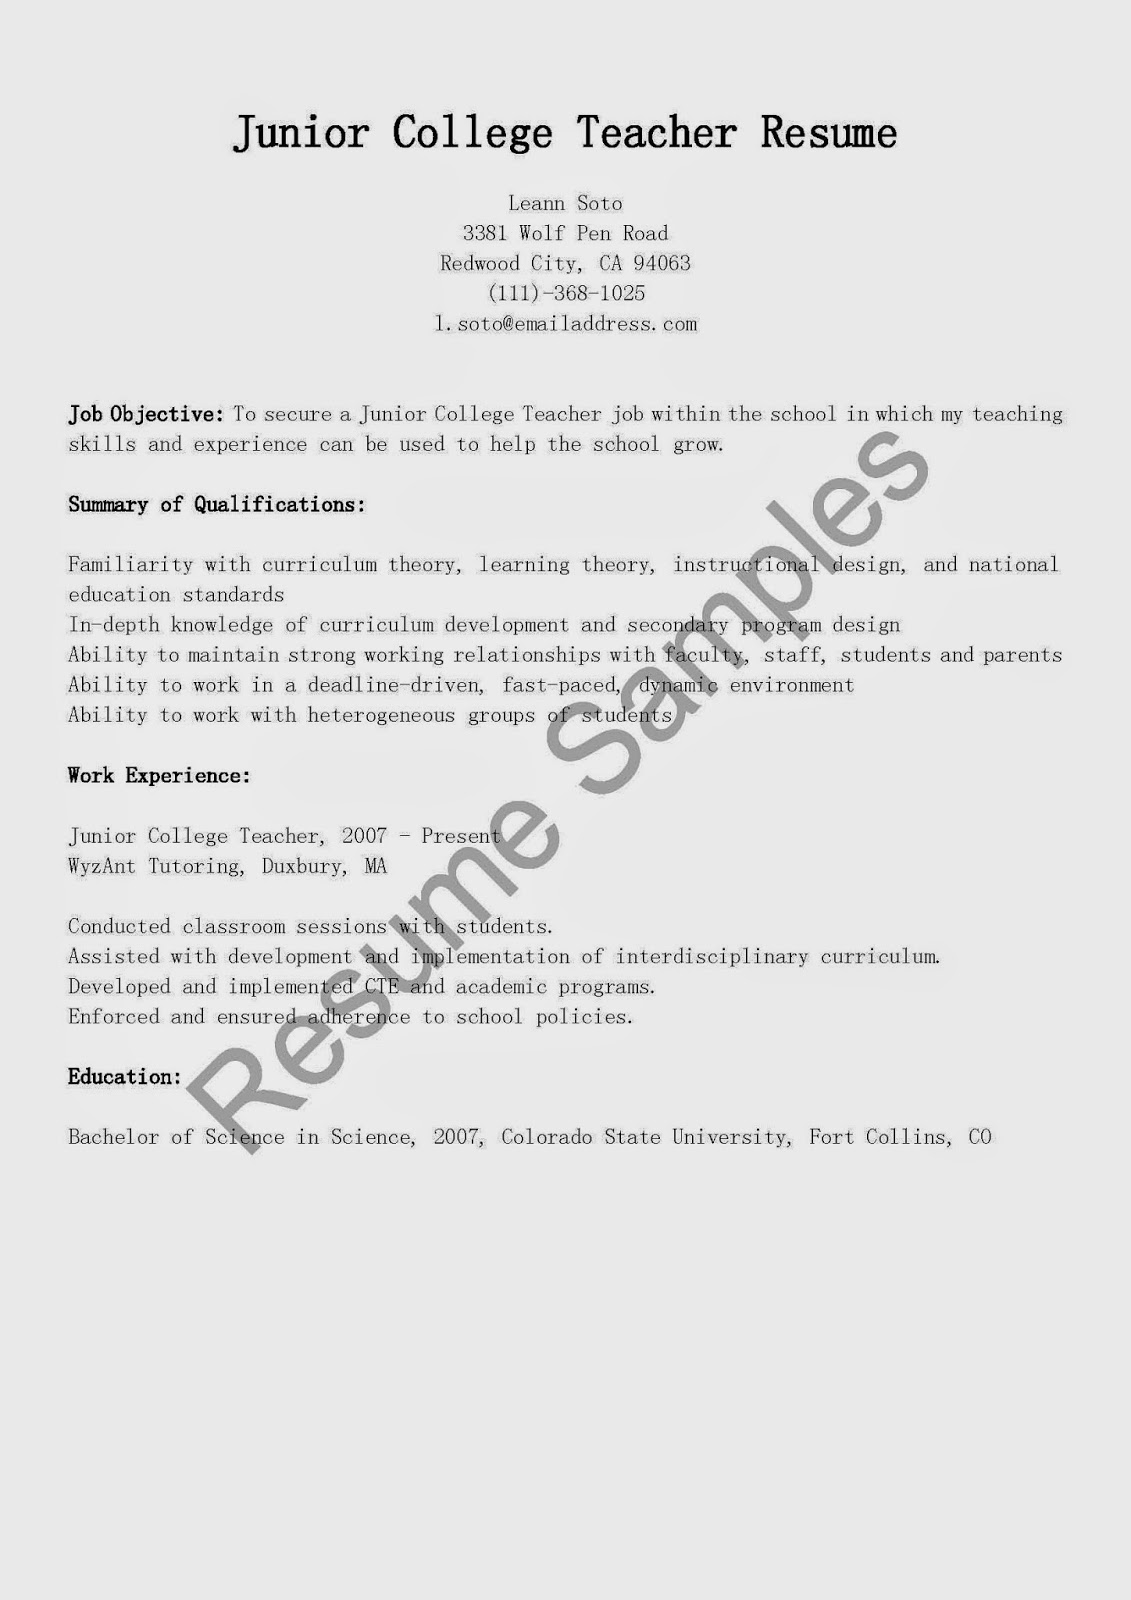 Teachers Resume Teacher Resume Samples Amp Writing Guide Genius SlideShare Teacher  Resume Skills Examples Skills Resume  Teaching Skills Resume